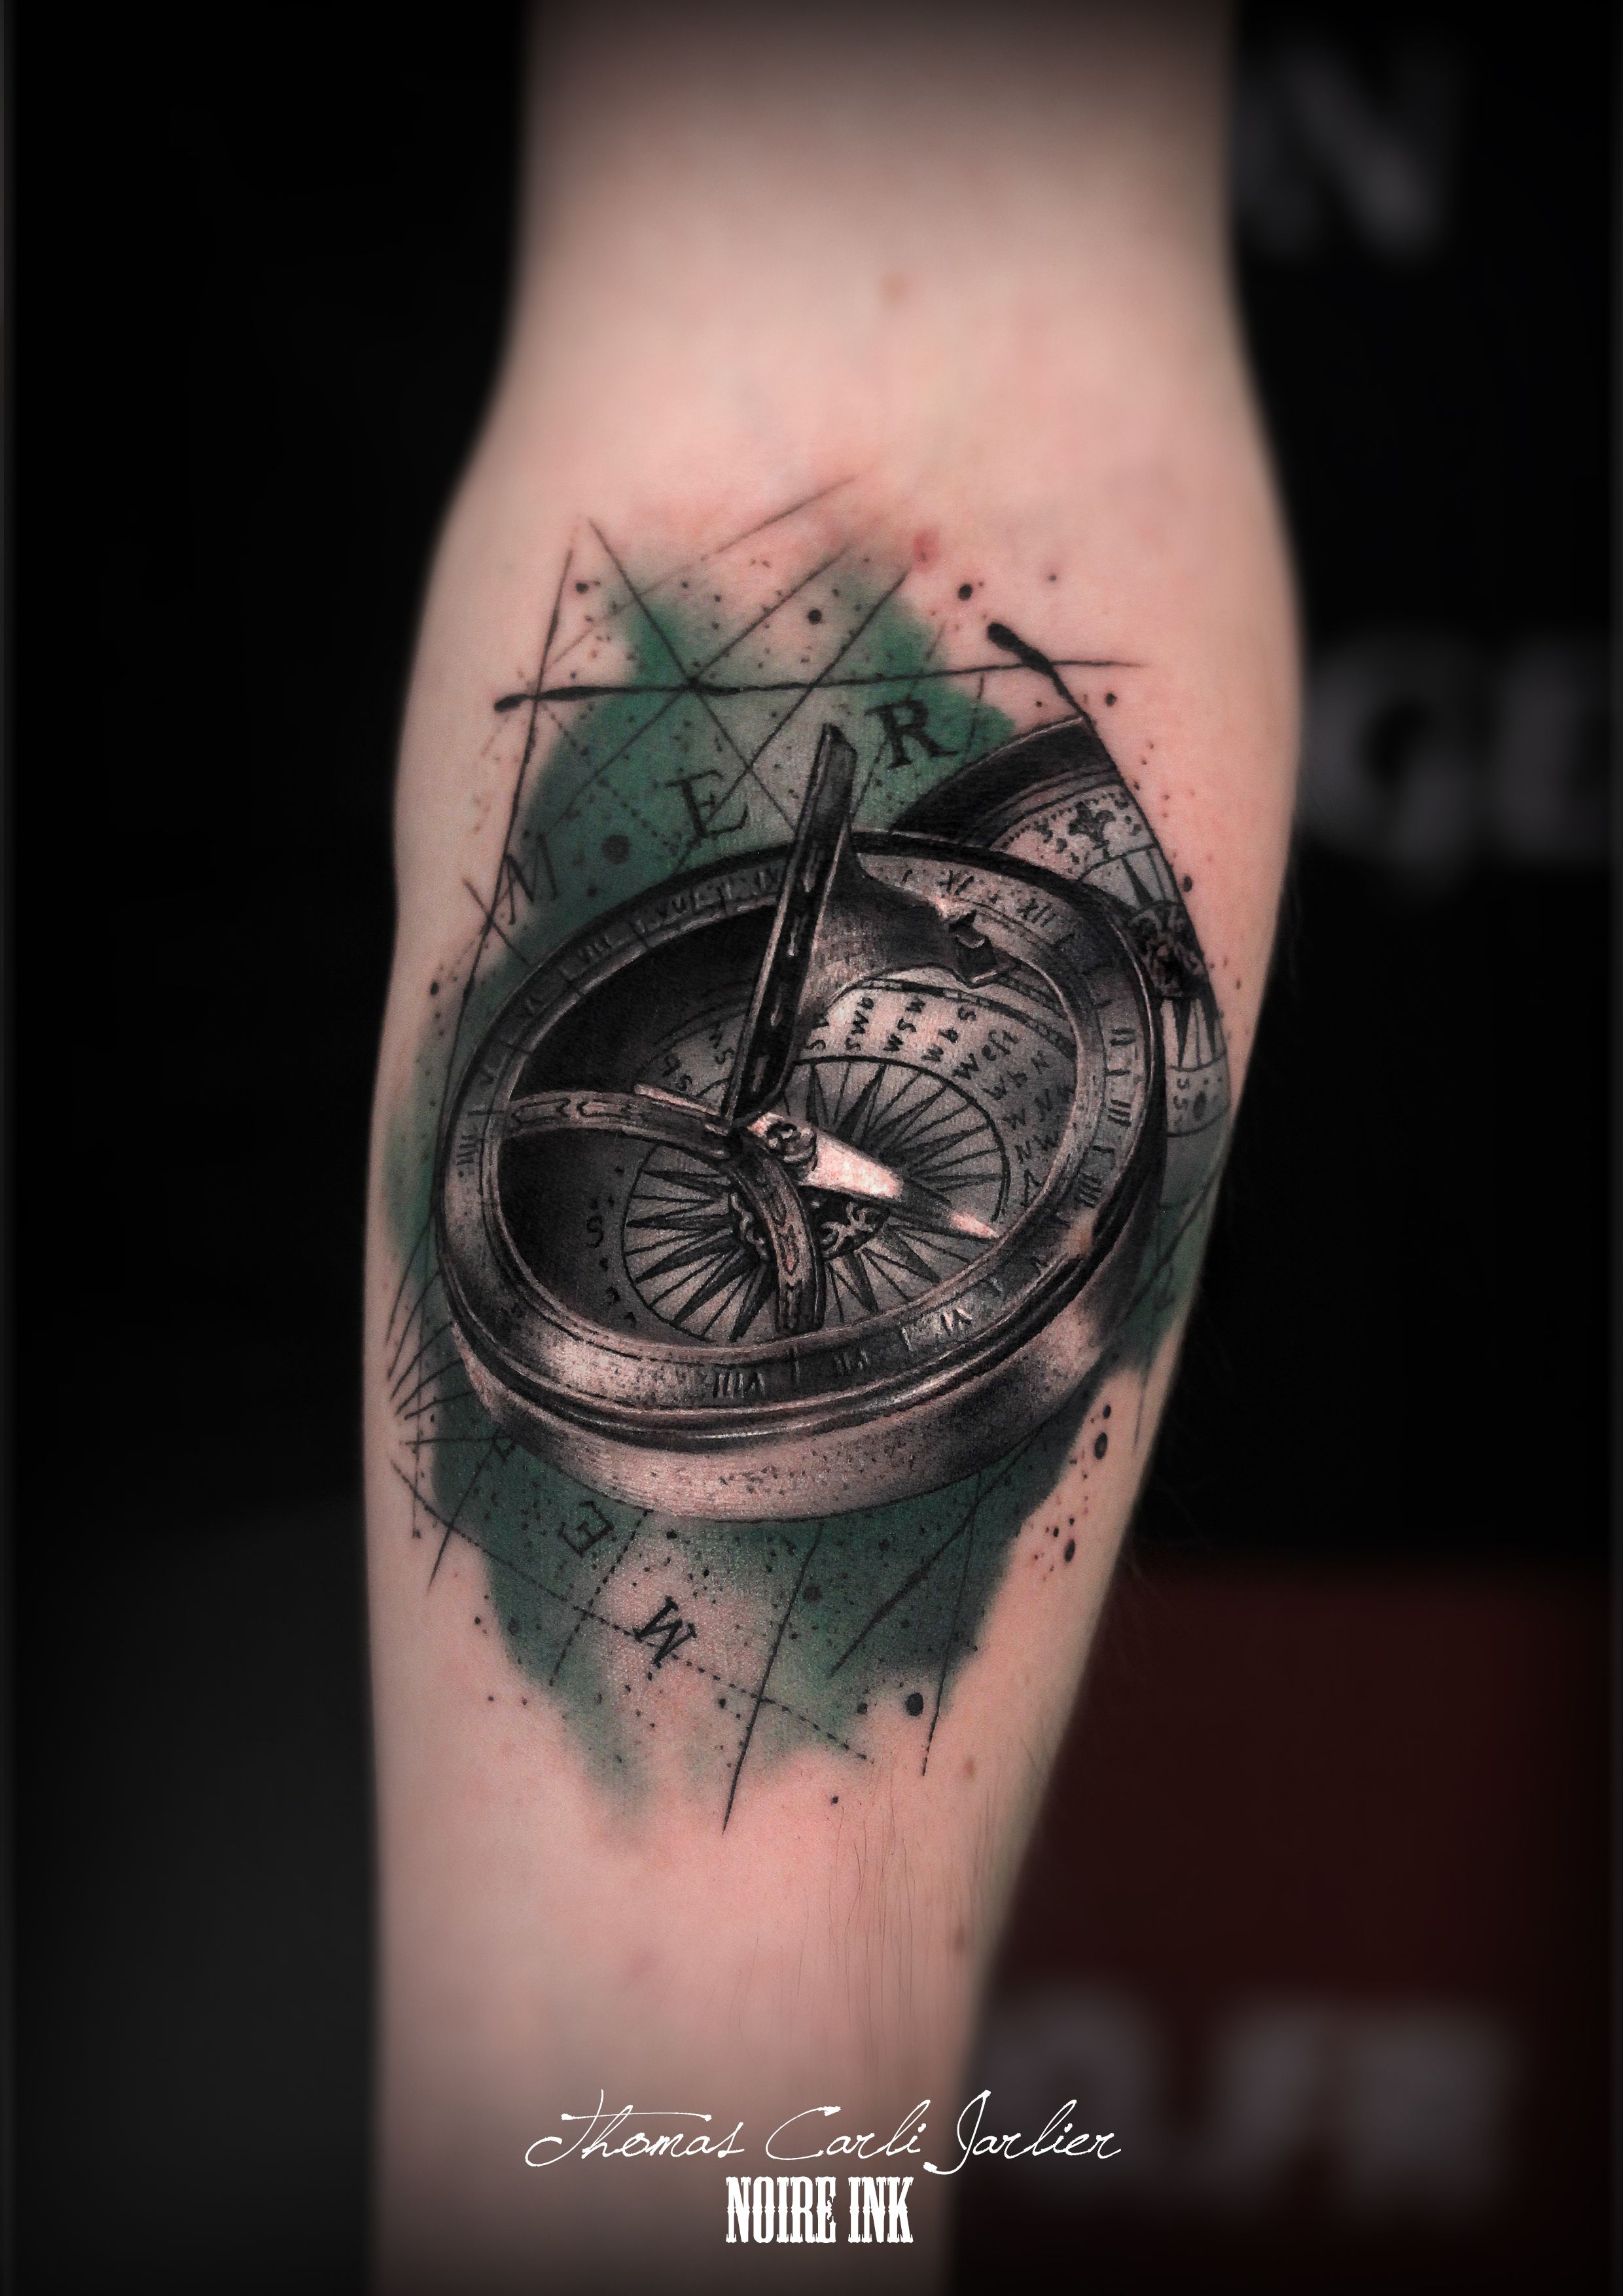 thomas carli jarlier compass google search tattoo pinterest compass tattoo compass and. Black Bedroom Furniture Sets. Home Design Ideas